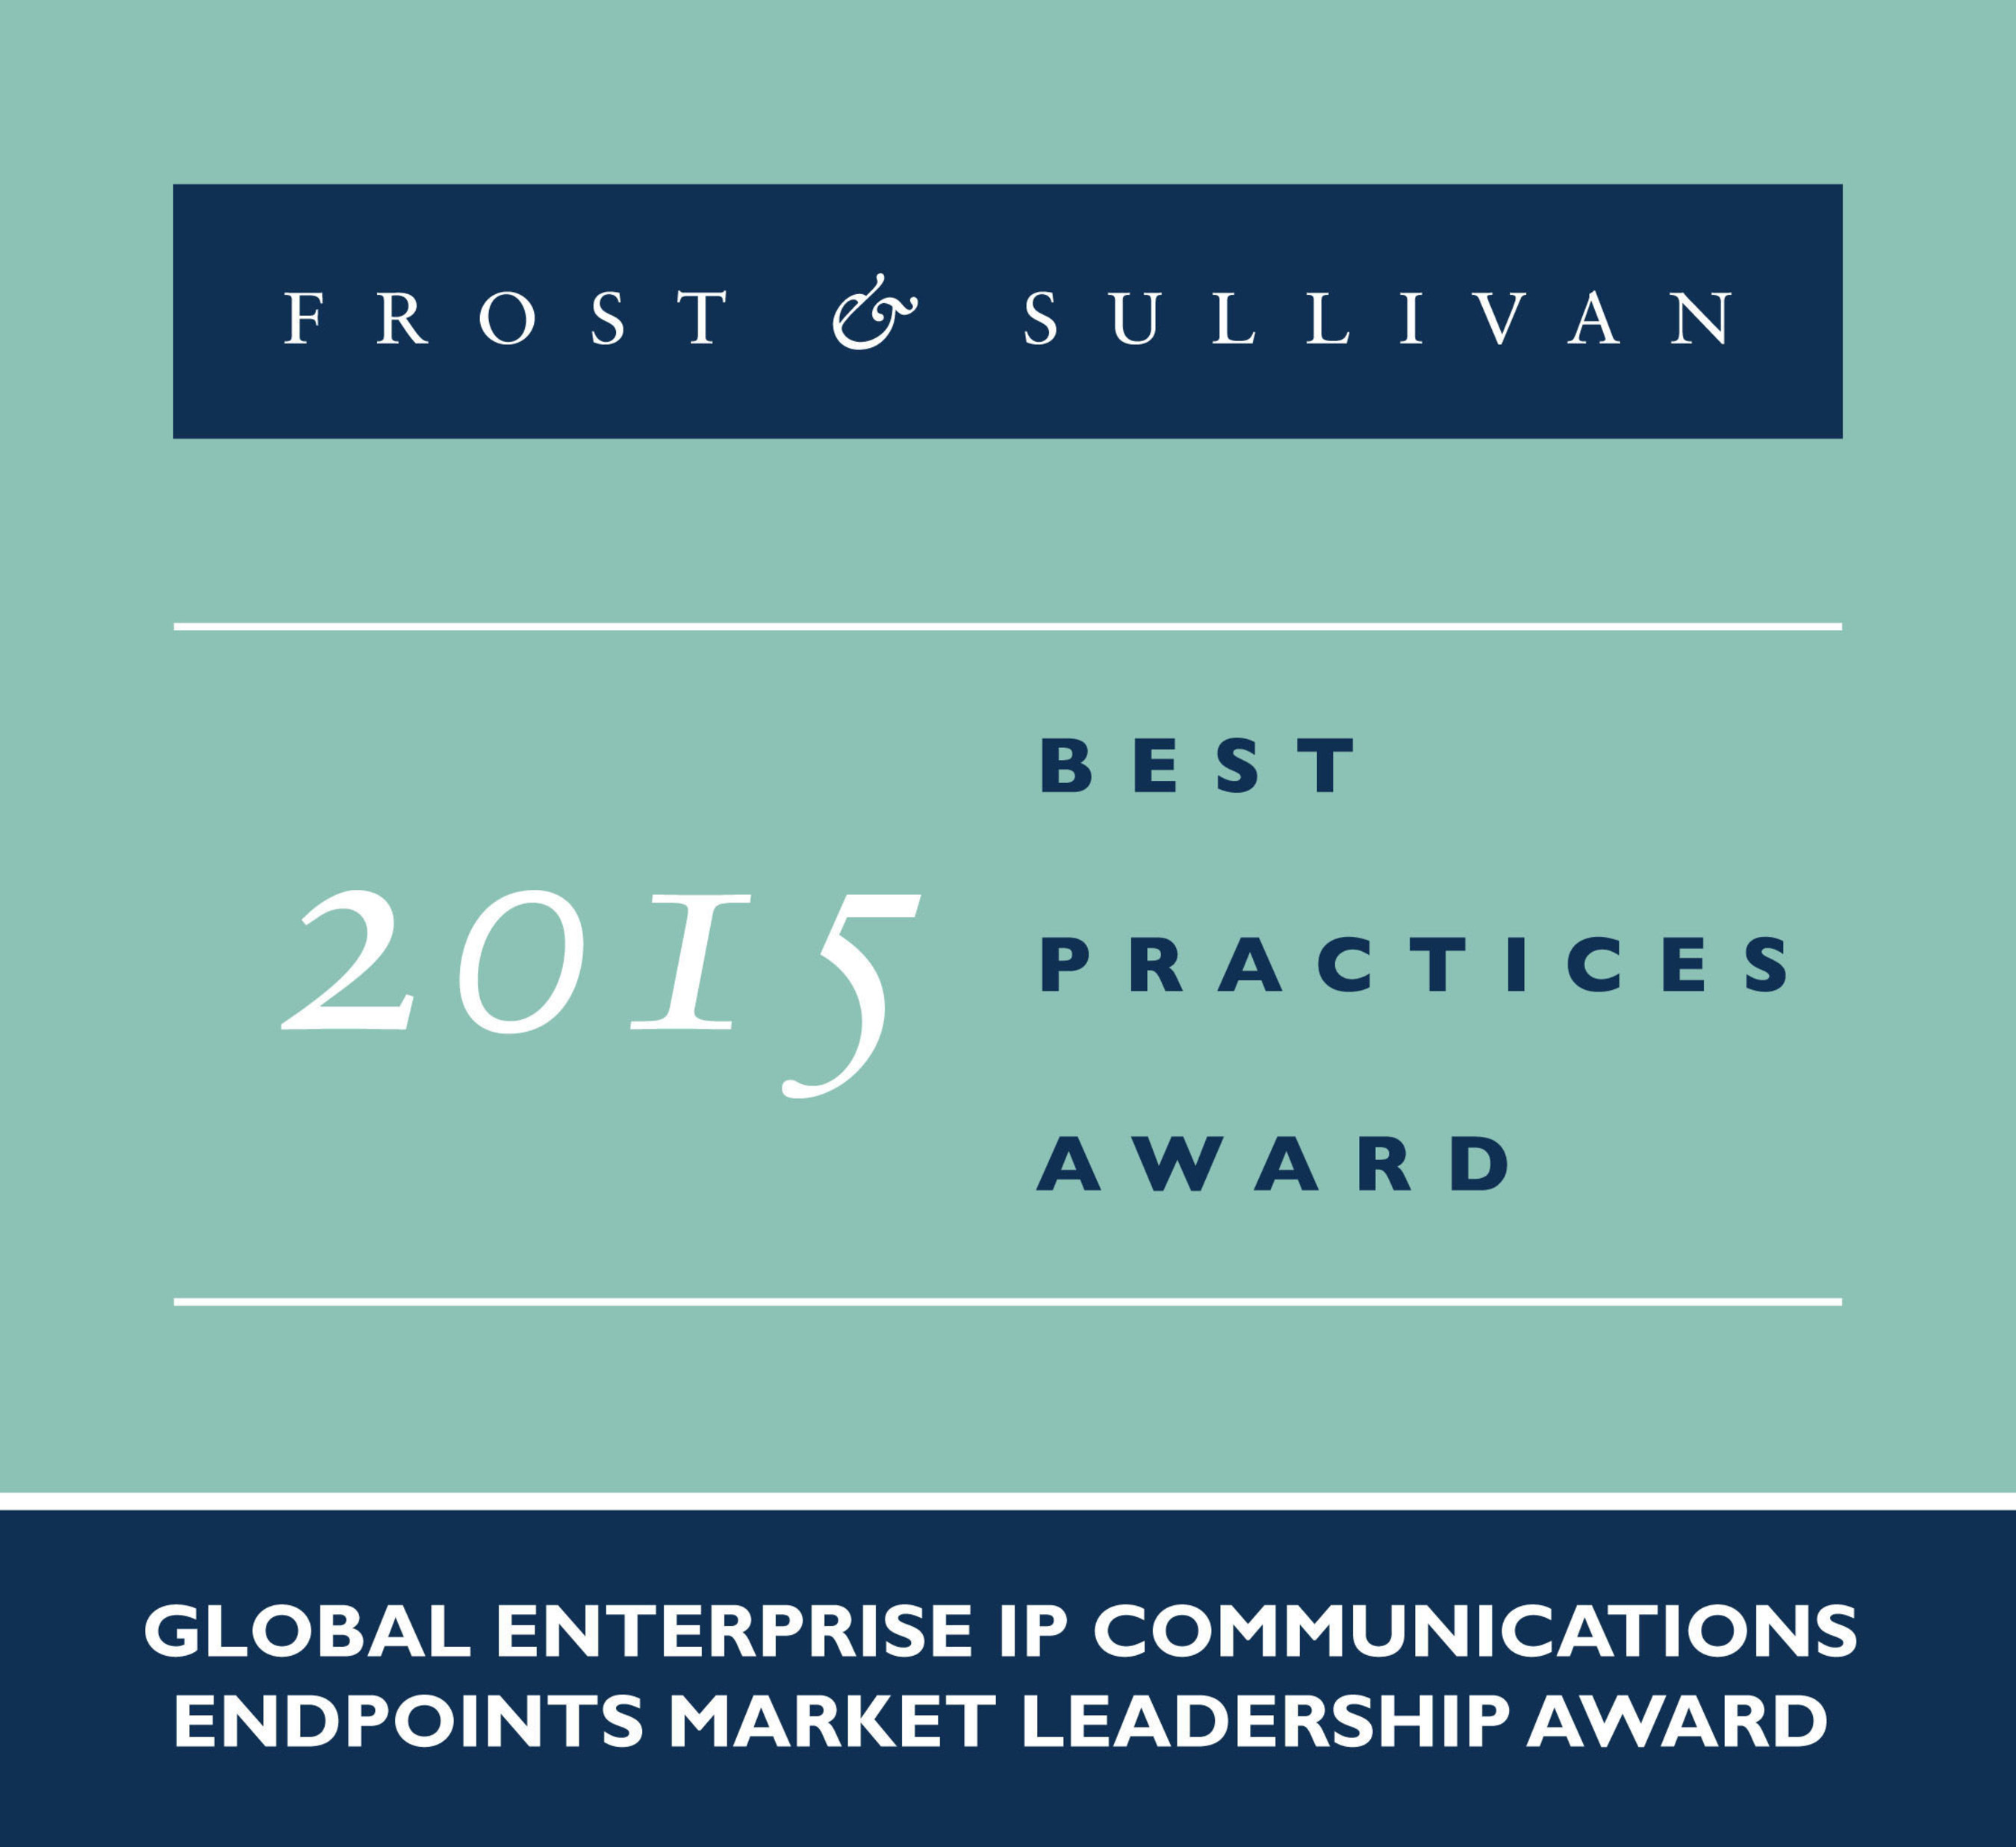 Frost & Sullivan Acclaims Cisco's Rise to the Top through its Relentless Pursuit of Technology